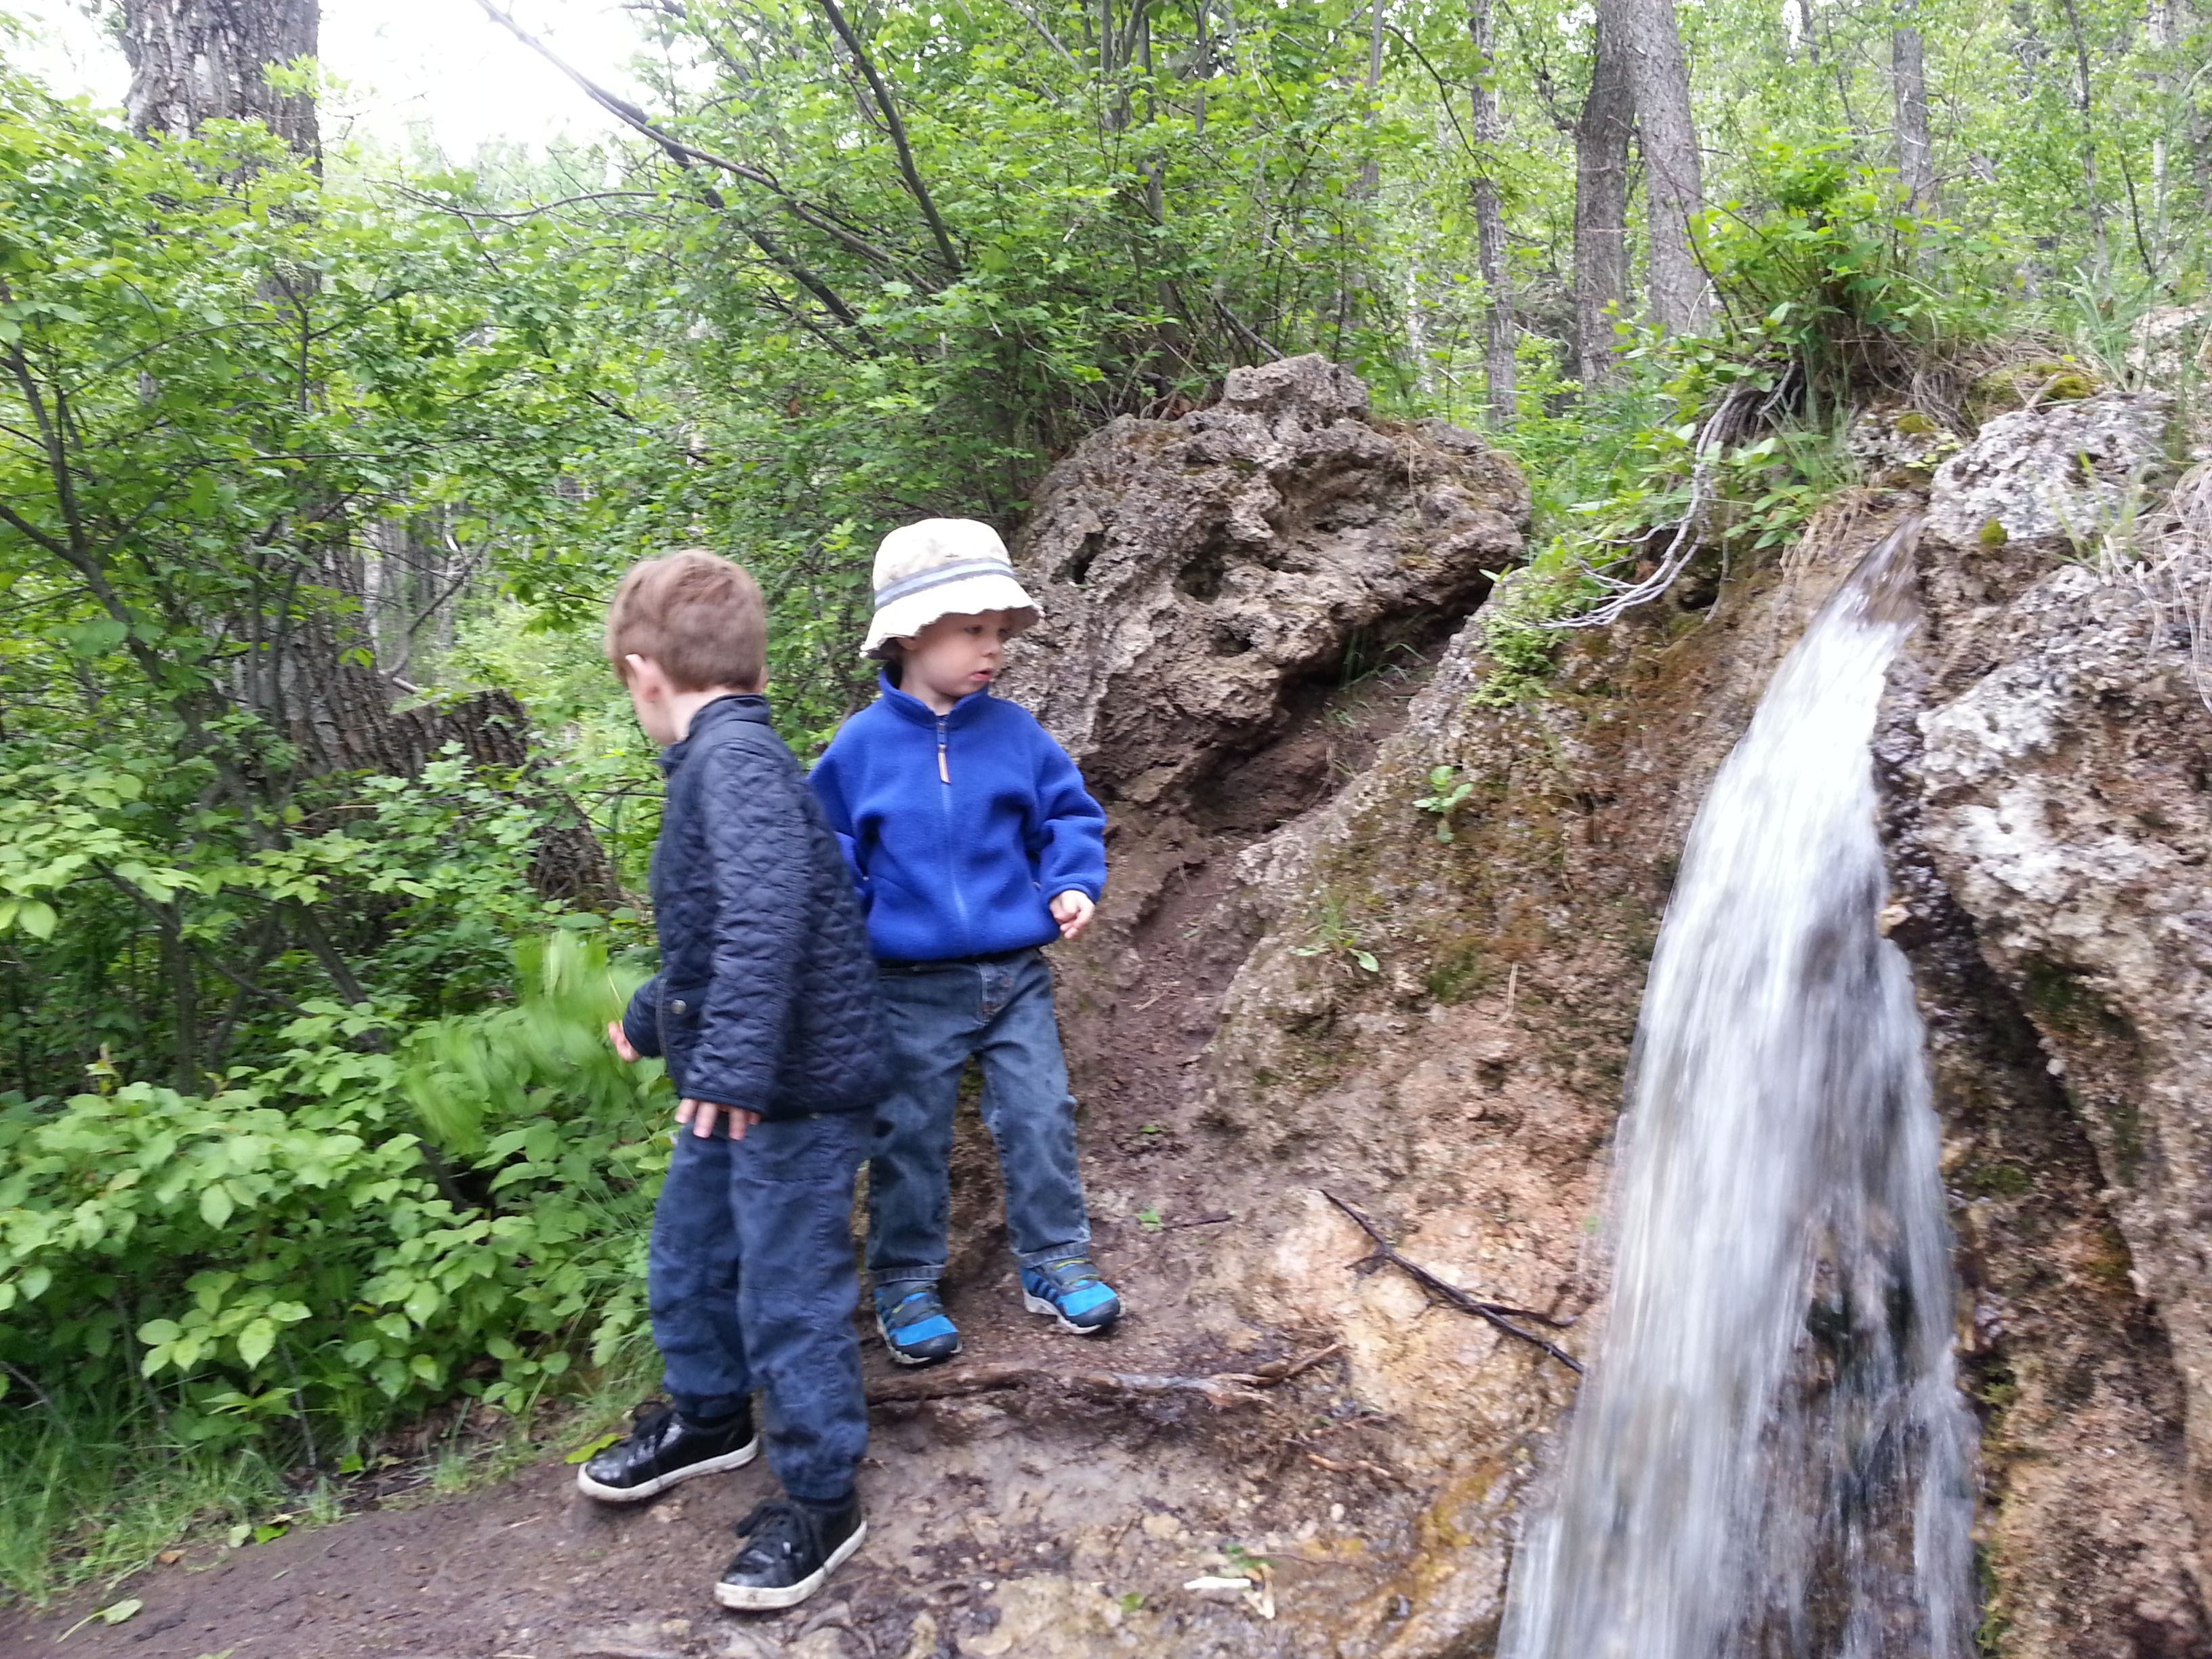 At the end of the day, Max said his favorite part was seeing the humongous waterfalls.